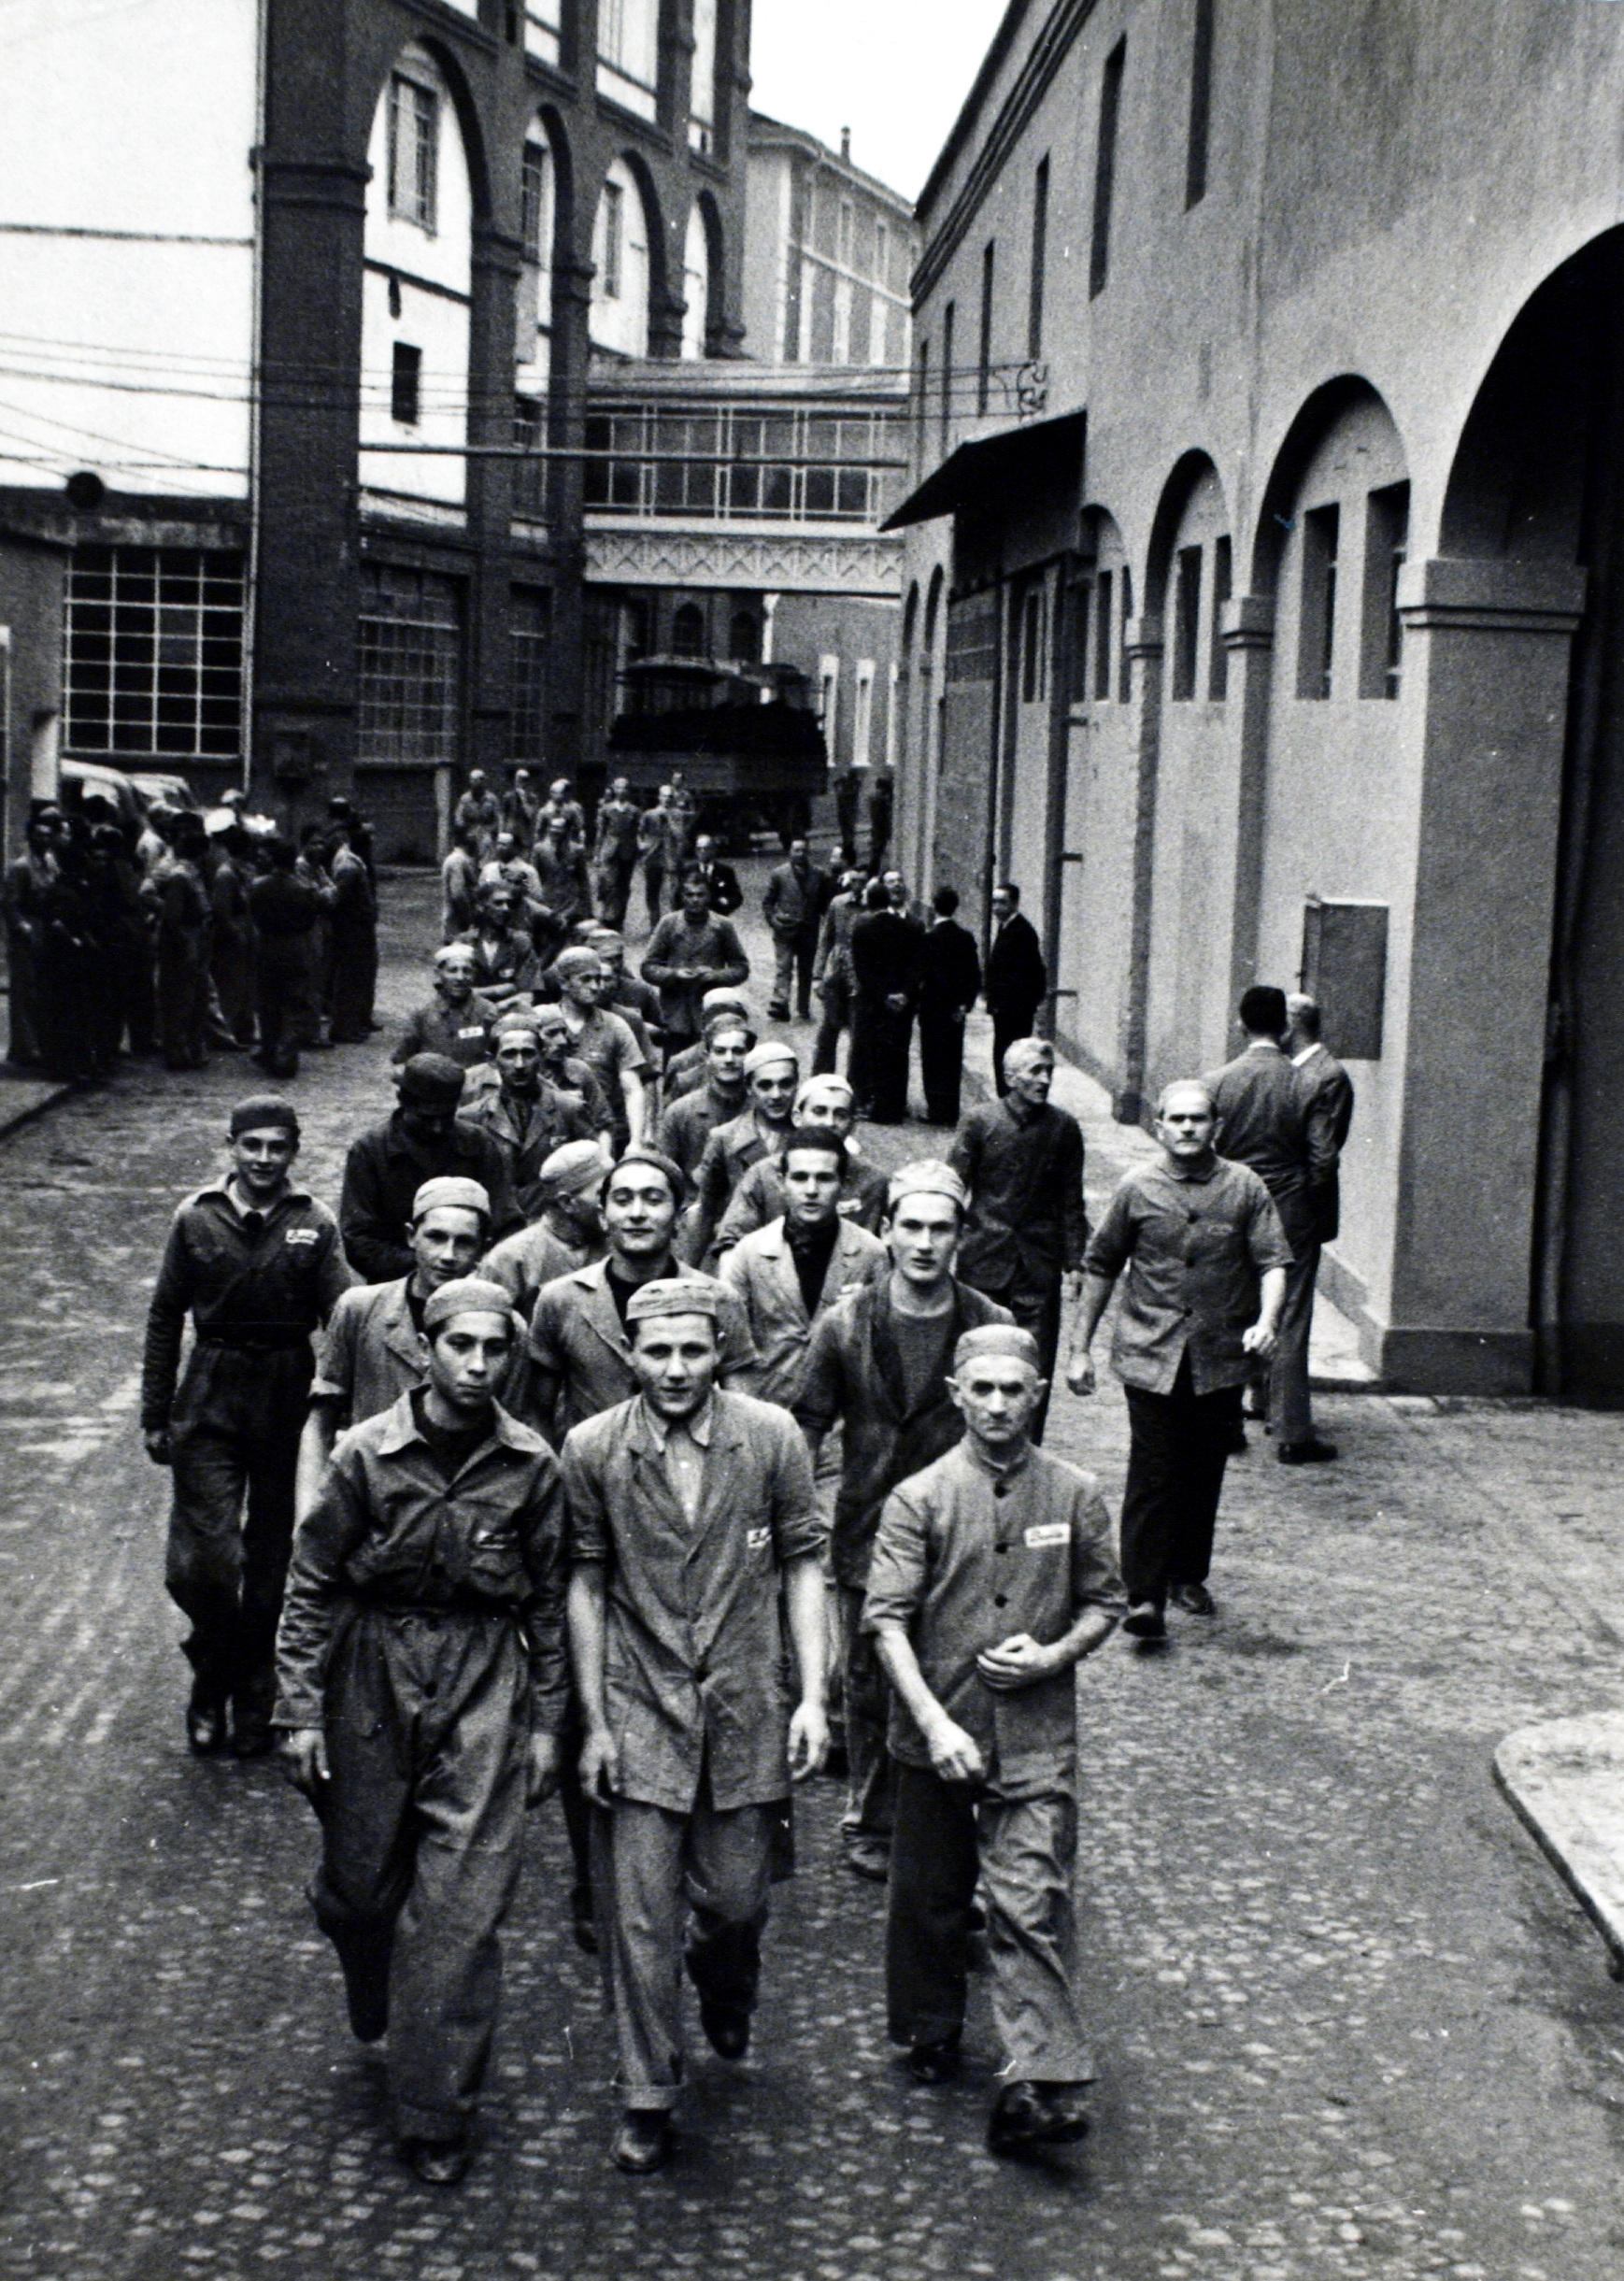 A view of the passage between the bakery (on the right) and the pasta plant (on the left) and workers walking through during the change of shift in 1940 [ASB, Aa 563].